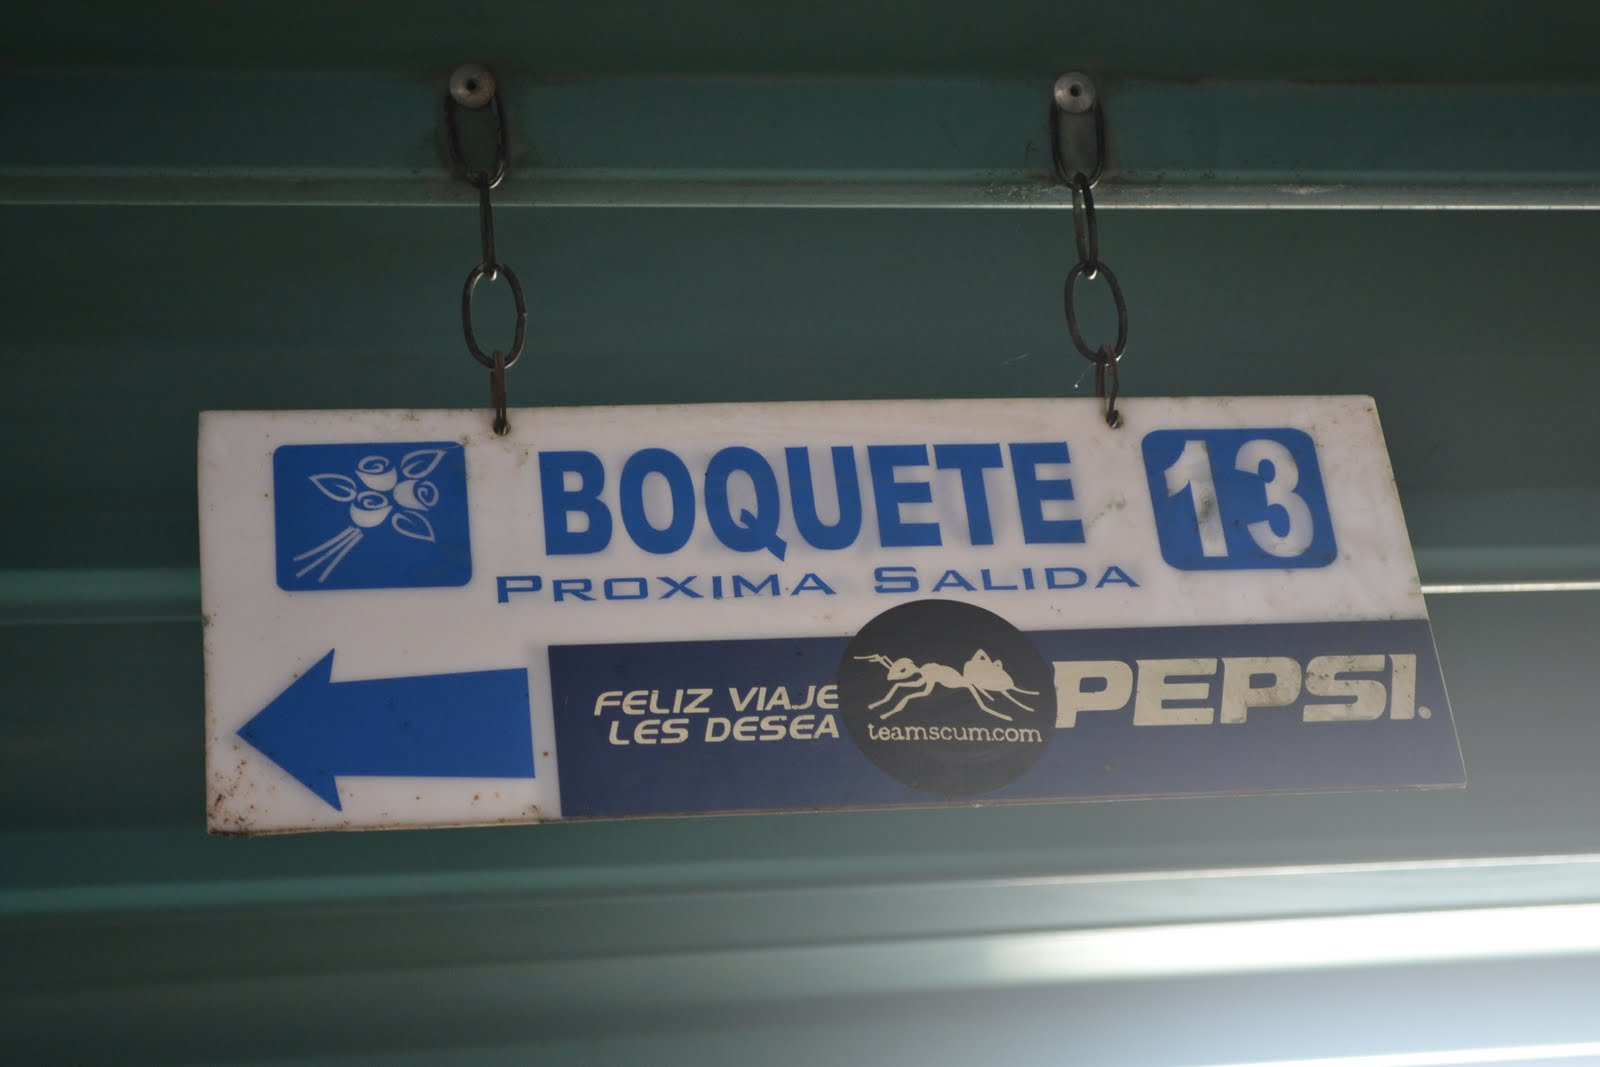 Taking a Bus from San Jose Costa Rica to Boquete Panama